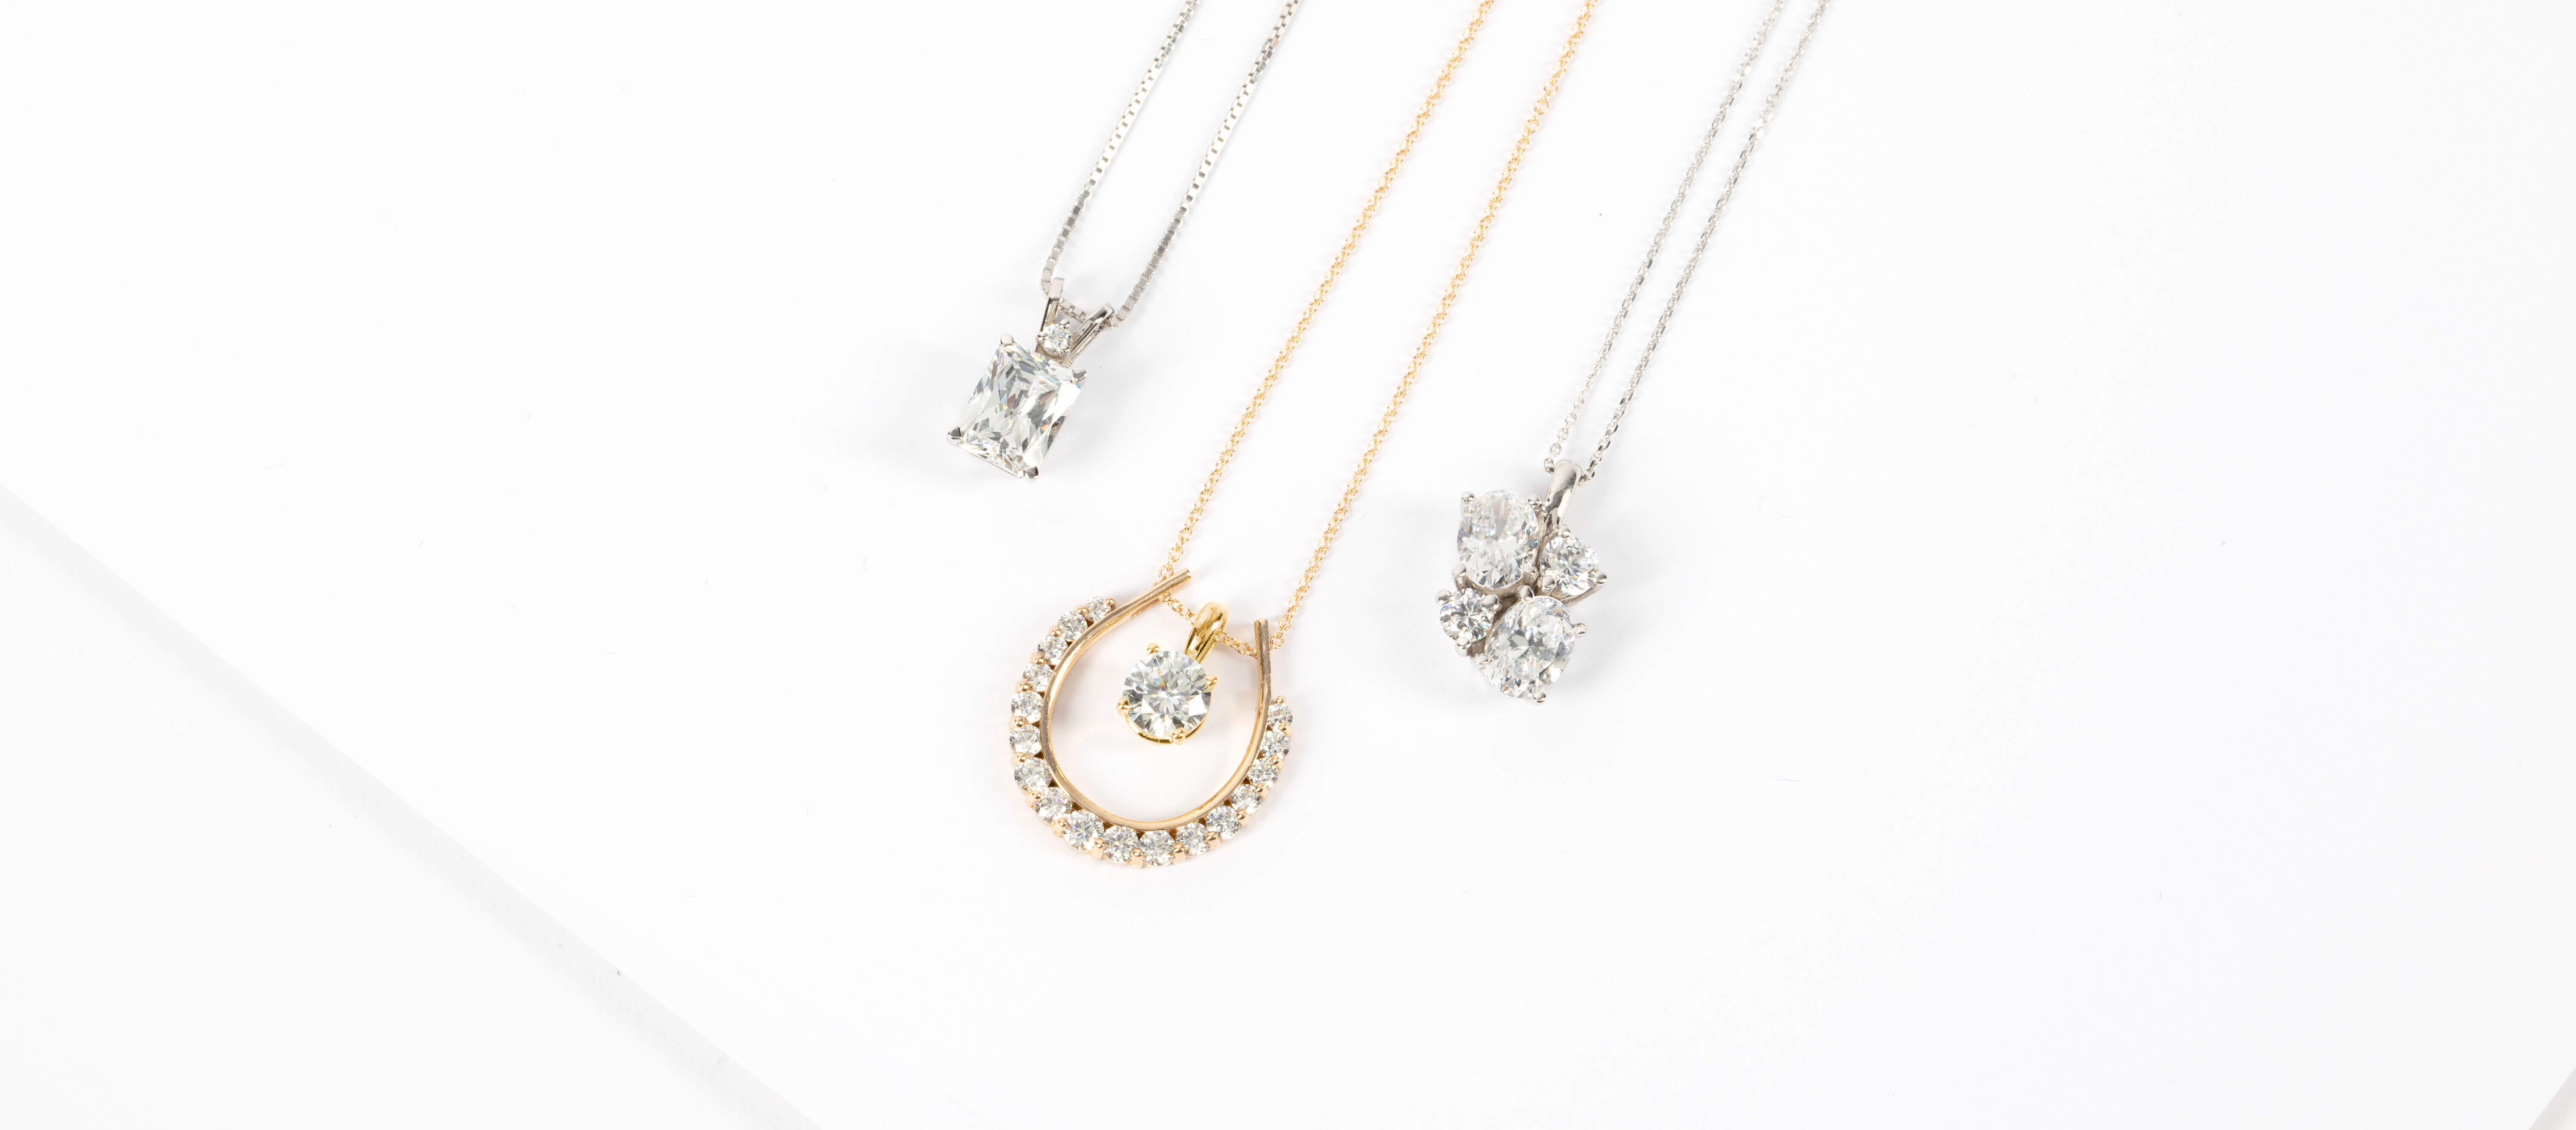 Assorted Diamond Nexus necklaces in white and yellow gold.